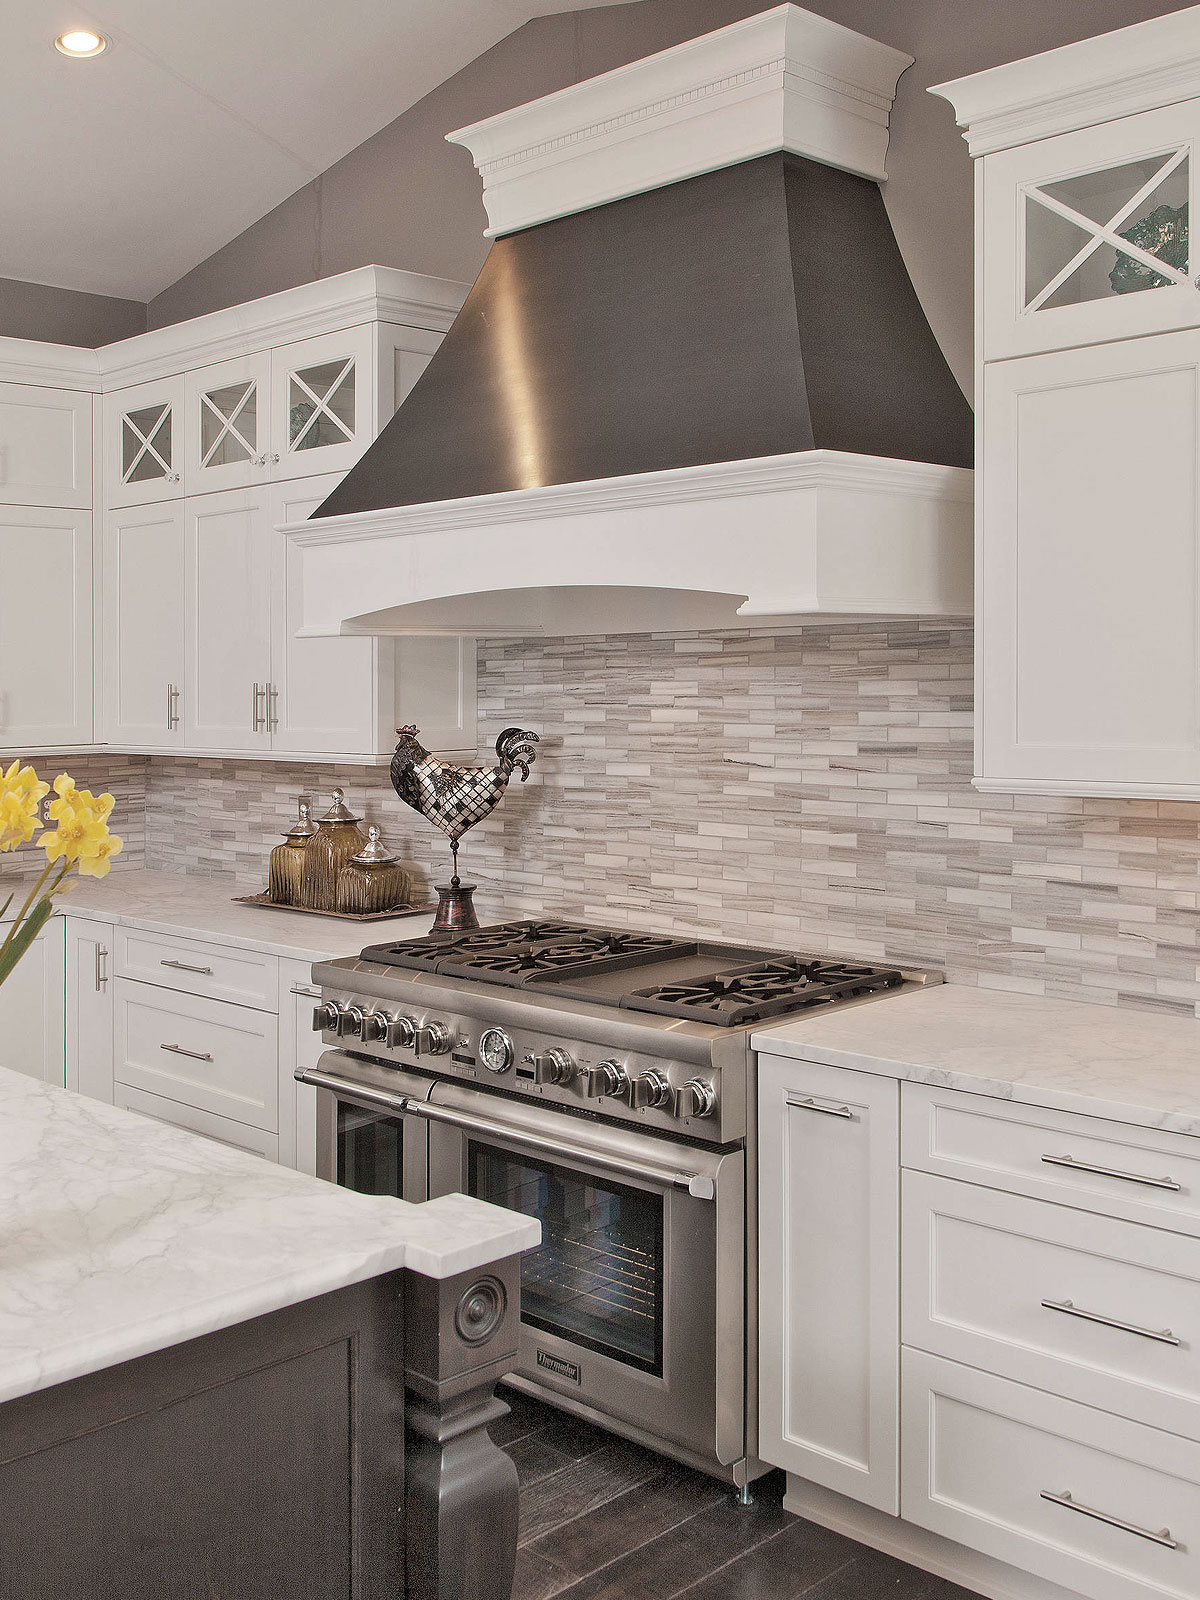 93 Gray Backsplash Ideas Contemporary Or Stylish Gray Trends